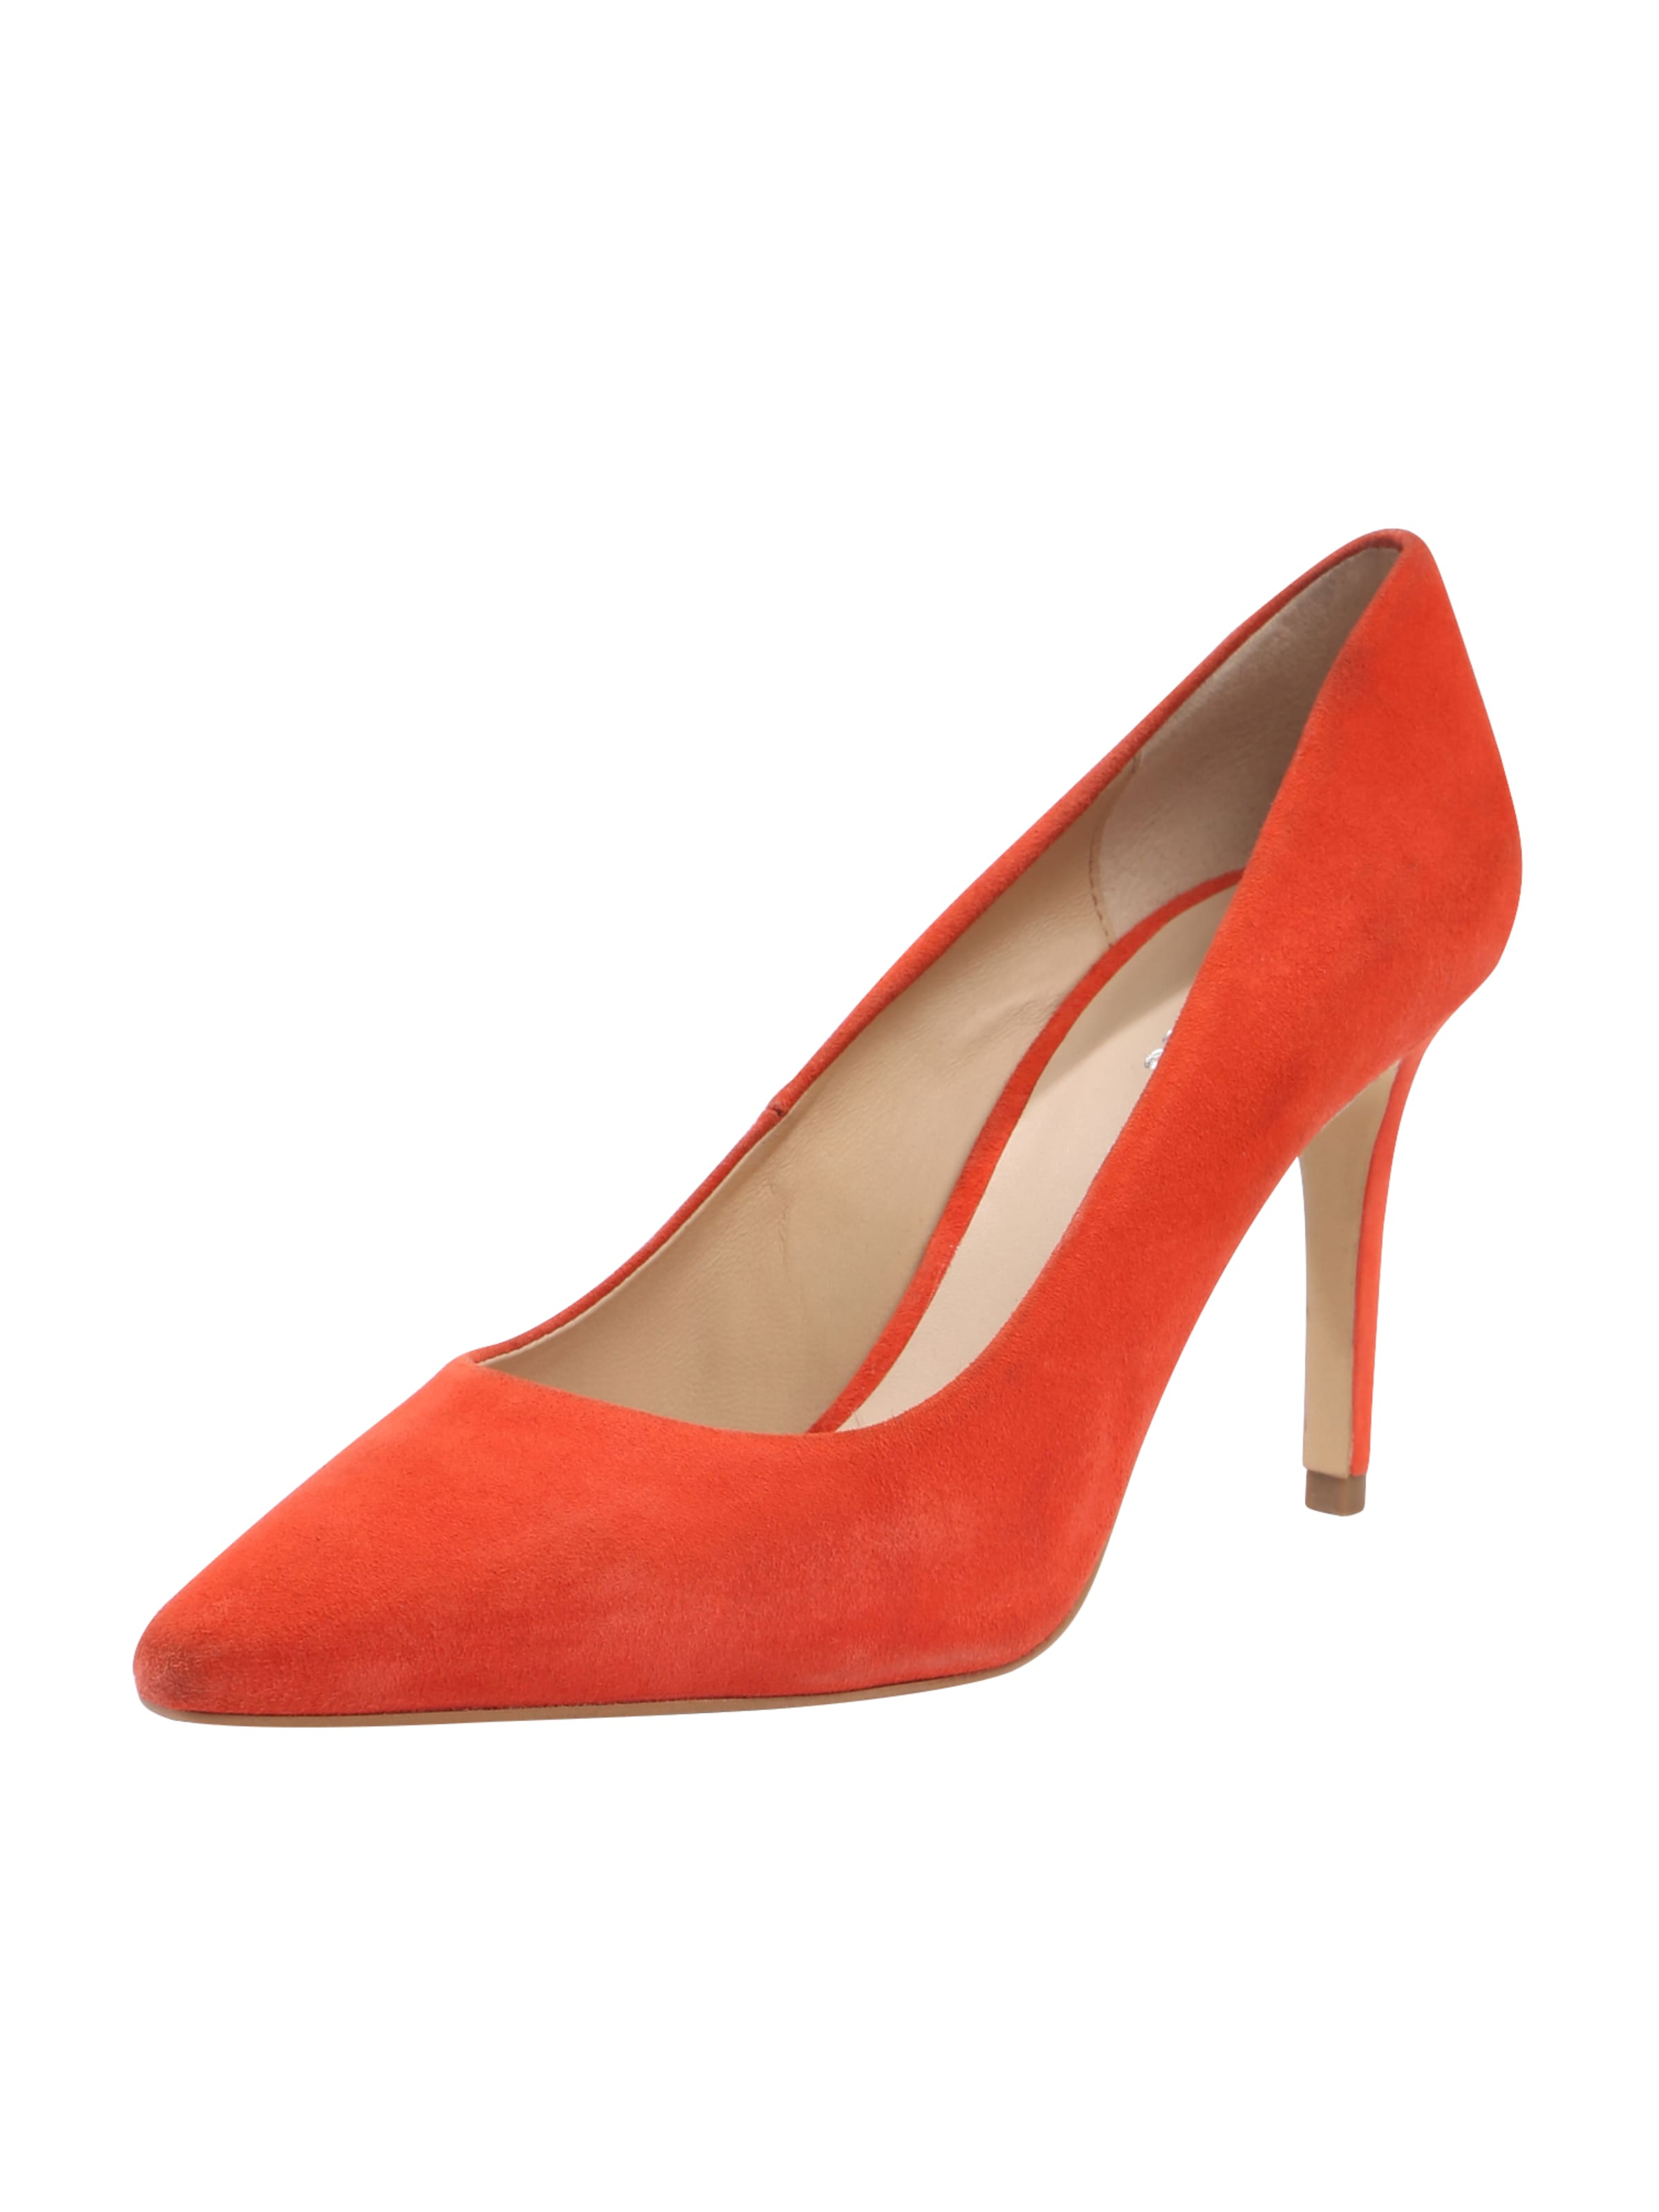 ABOUT YOU | Pumps  JUDITH